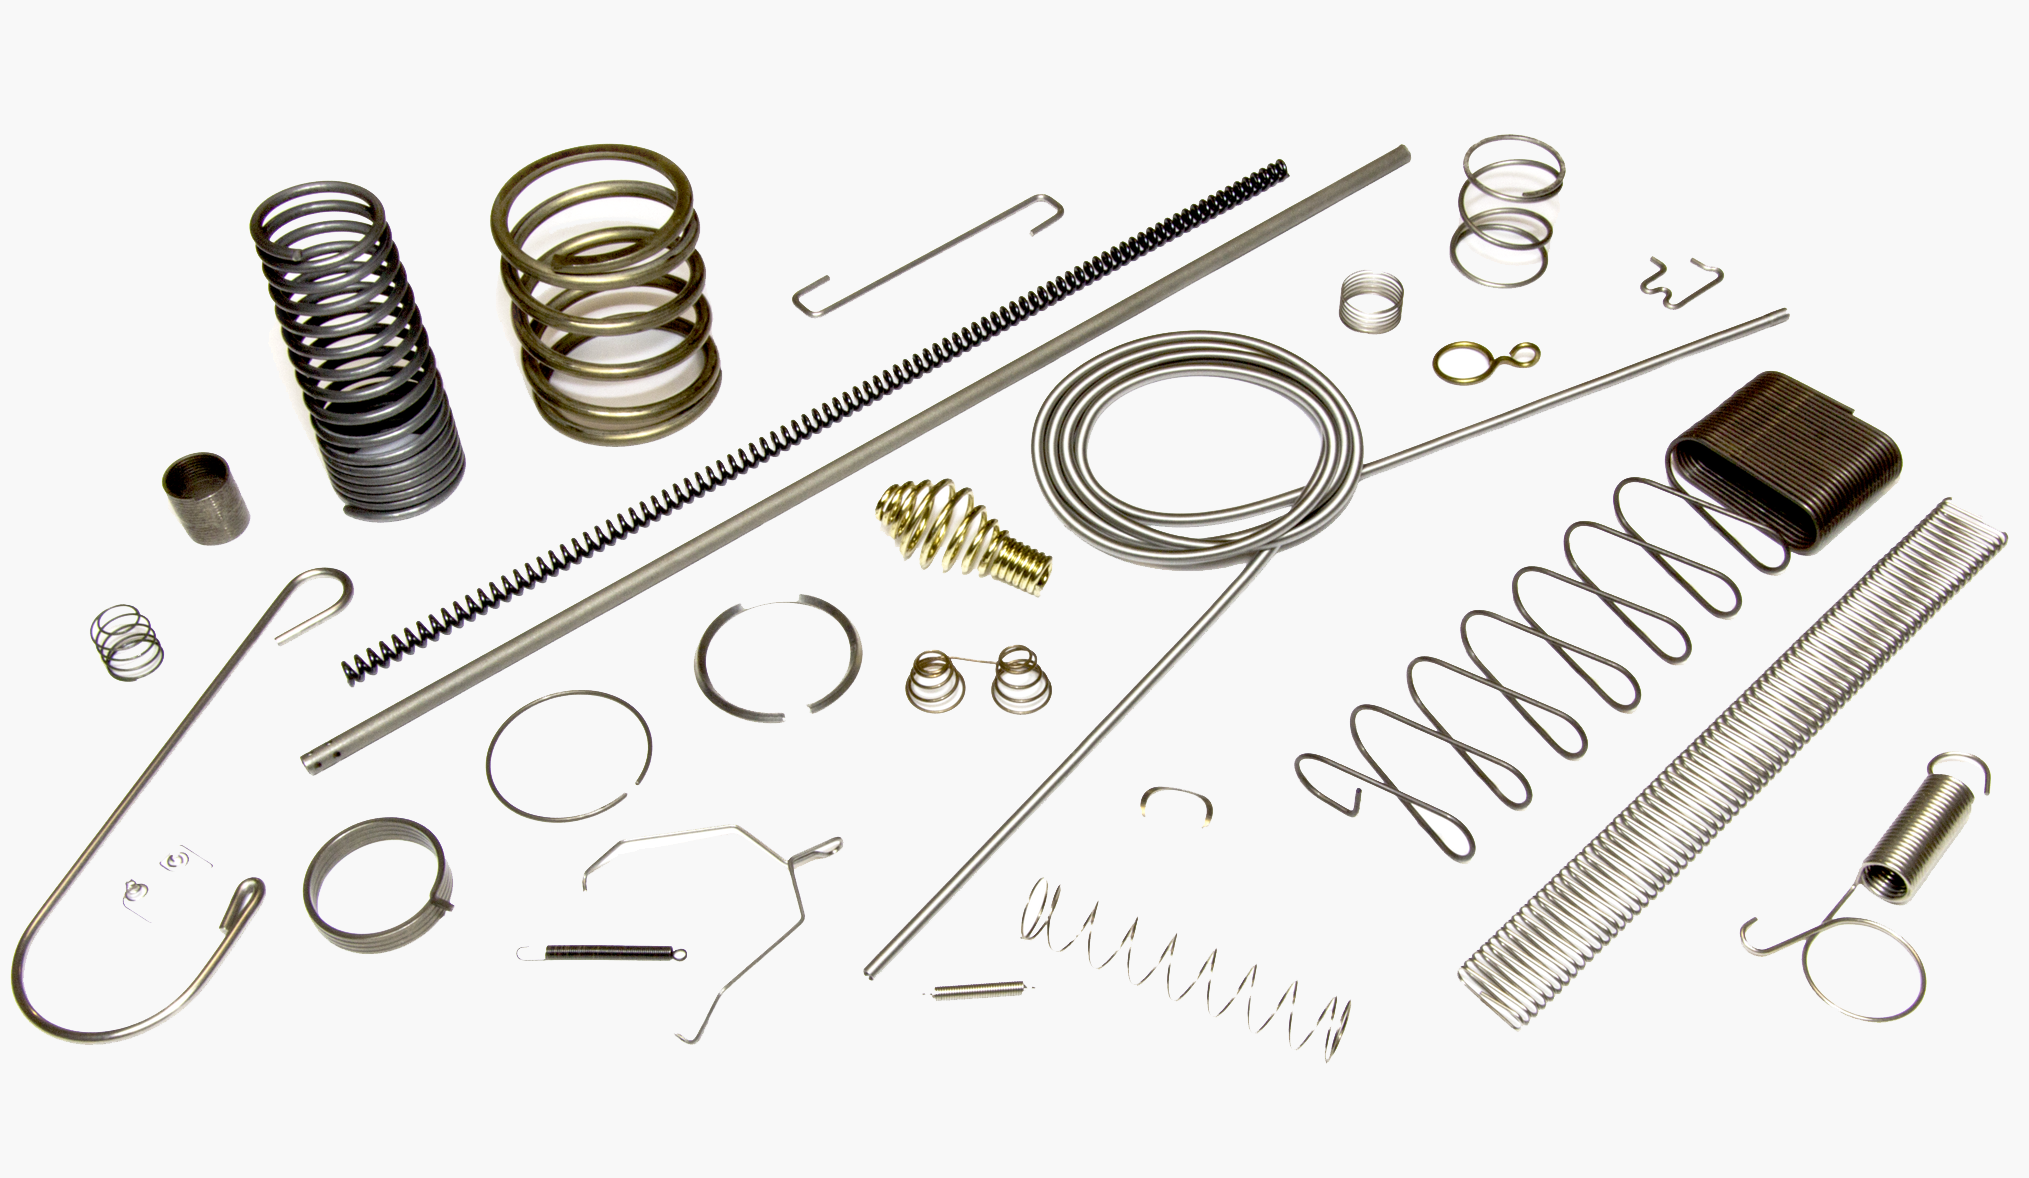 Custom springs for medical devices